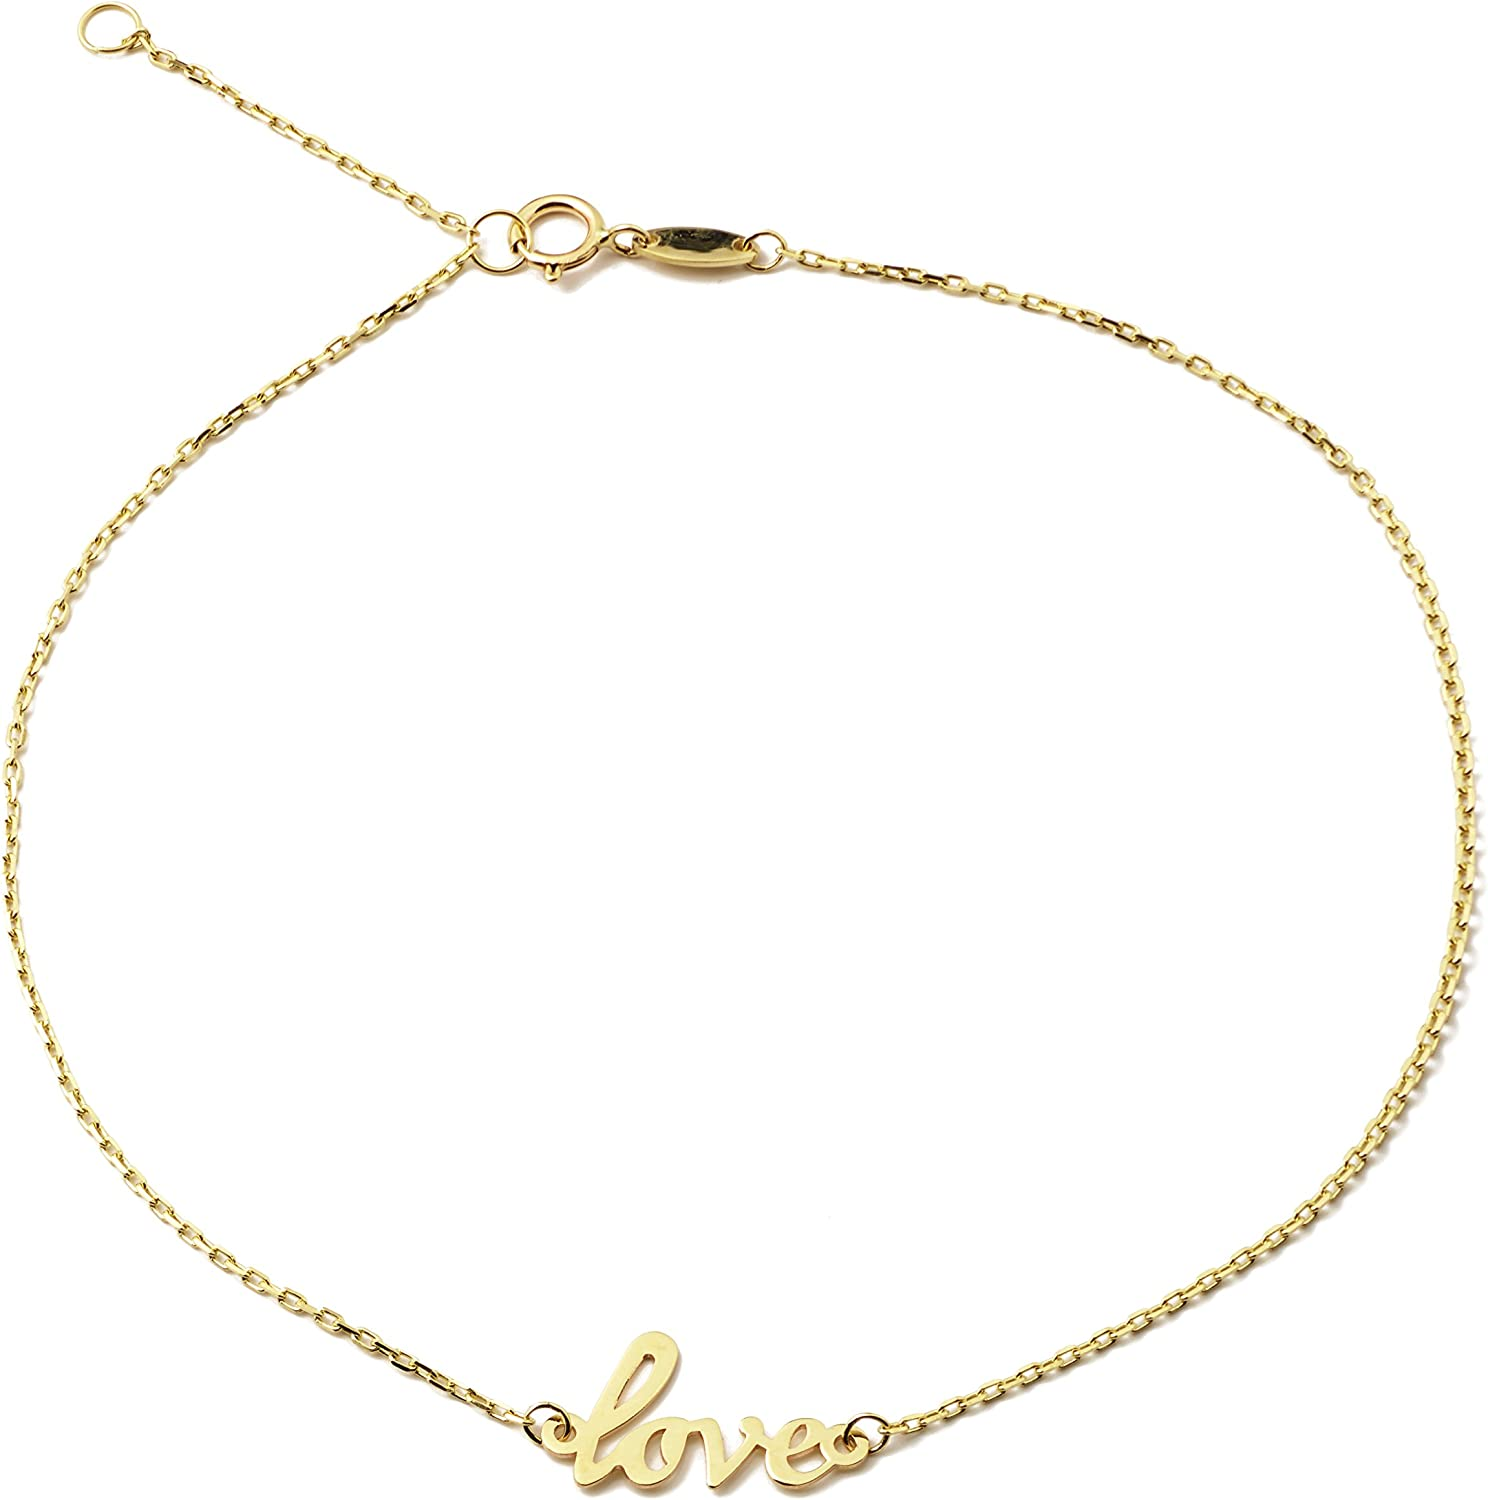 LOVEBLING 10K Yellow Gold .5mm Rolo Chain with Love Charm Anklet Adjustable 9 to 10 #50